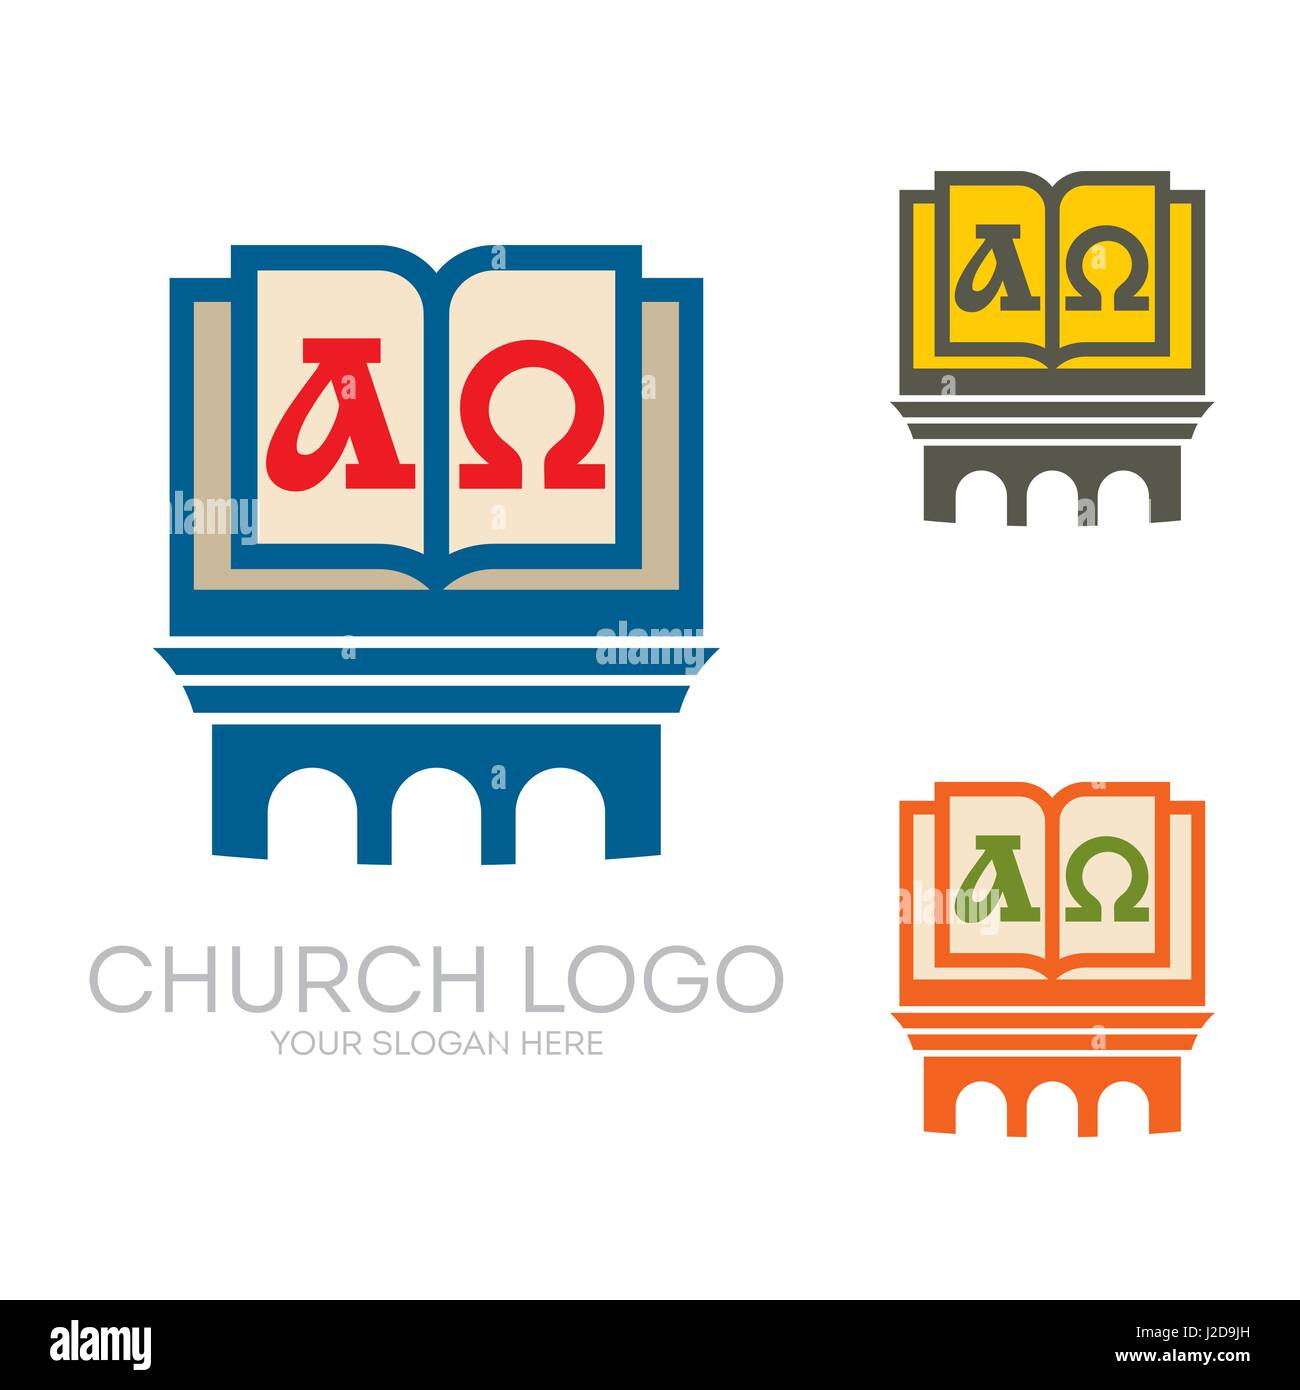 Church logo christian symbols holy bible cross alpha and omega christian symbols holy bible cross alpha and omega buycottarizona